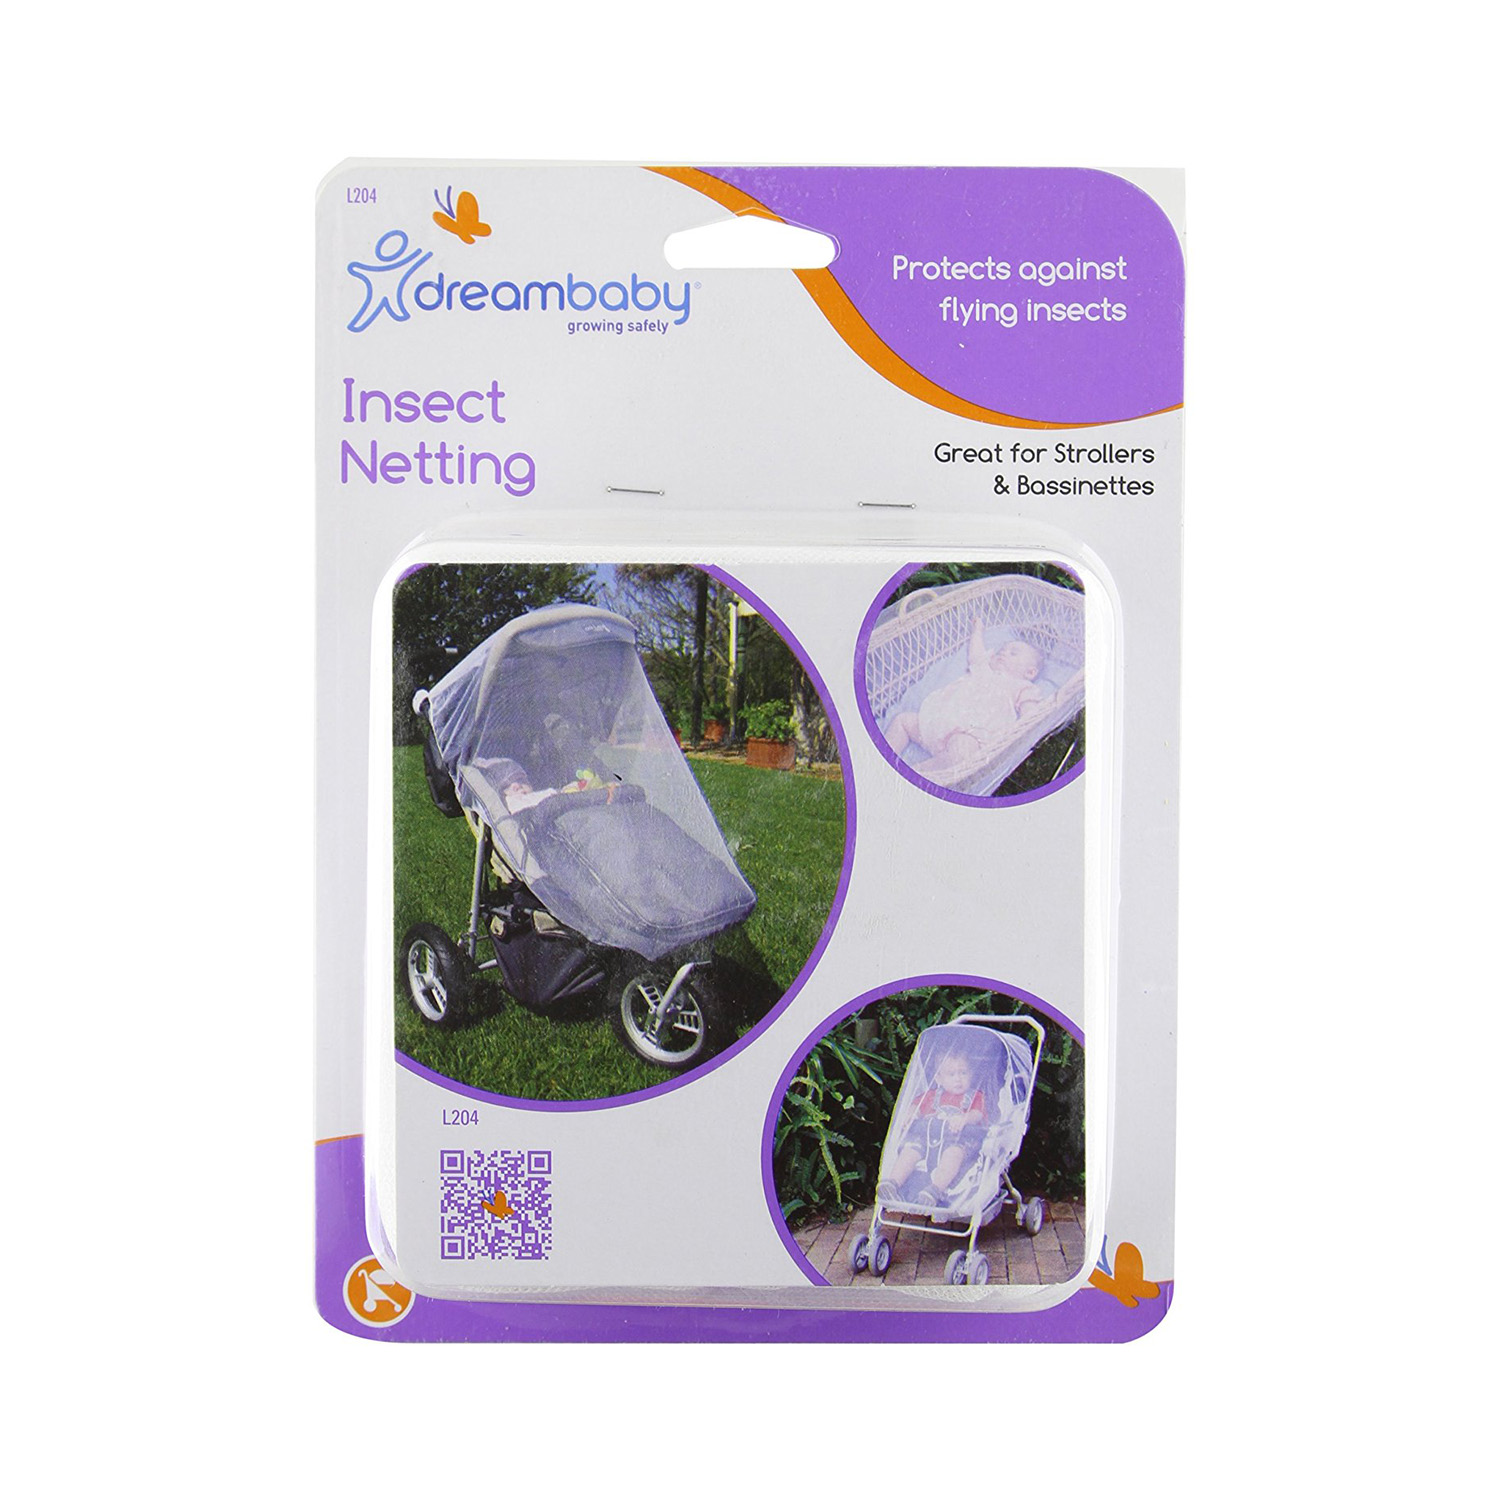 Dreambaby F204 Stroller Insect Netting